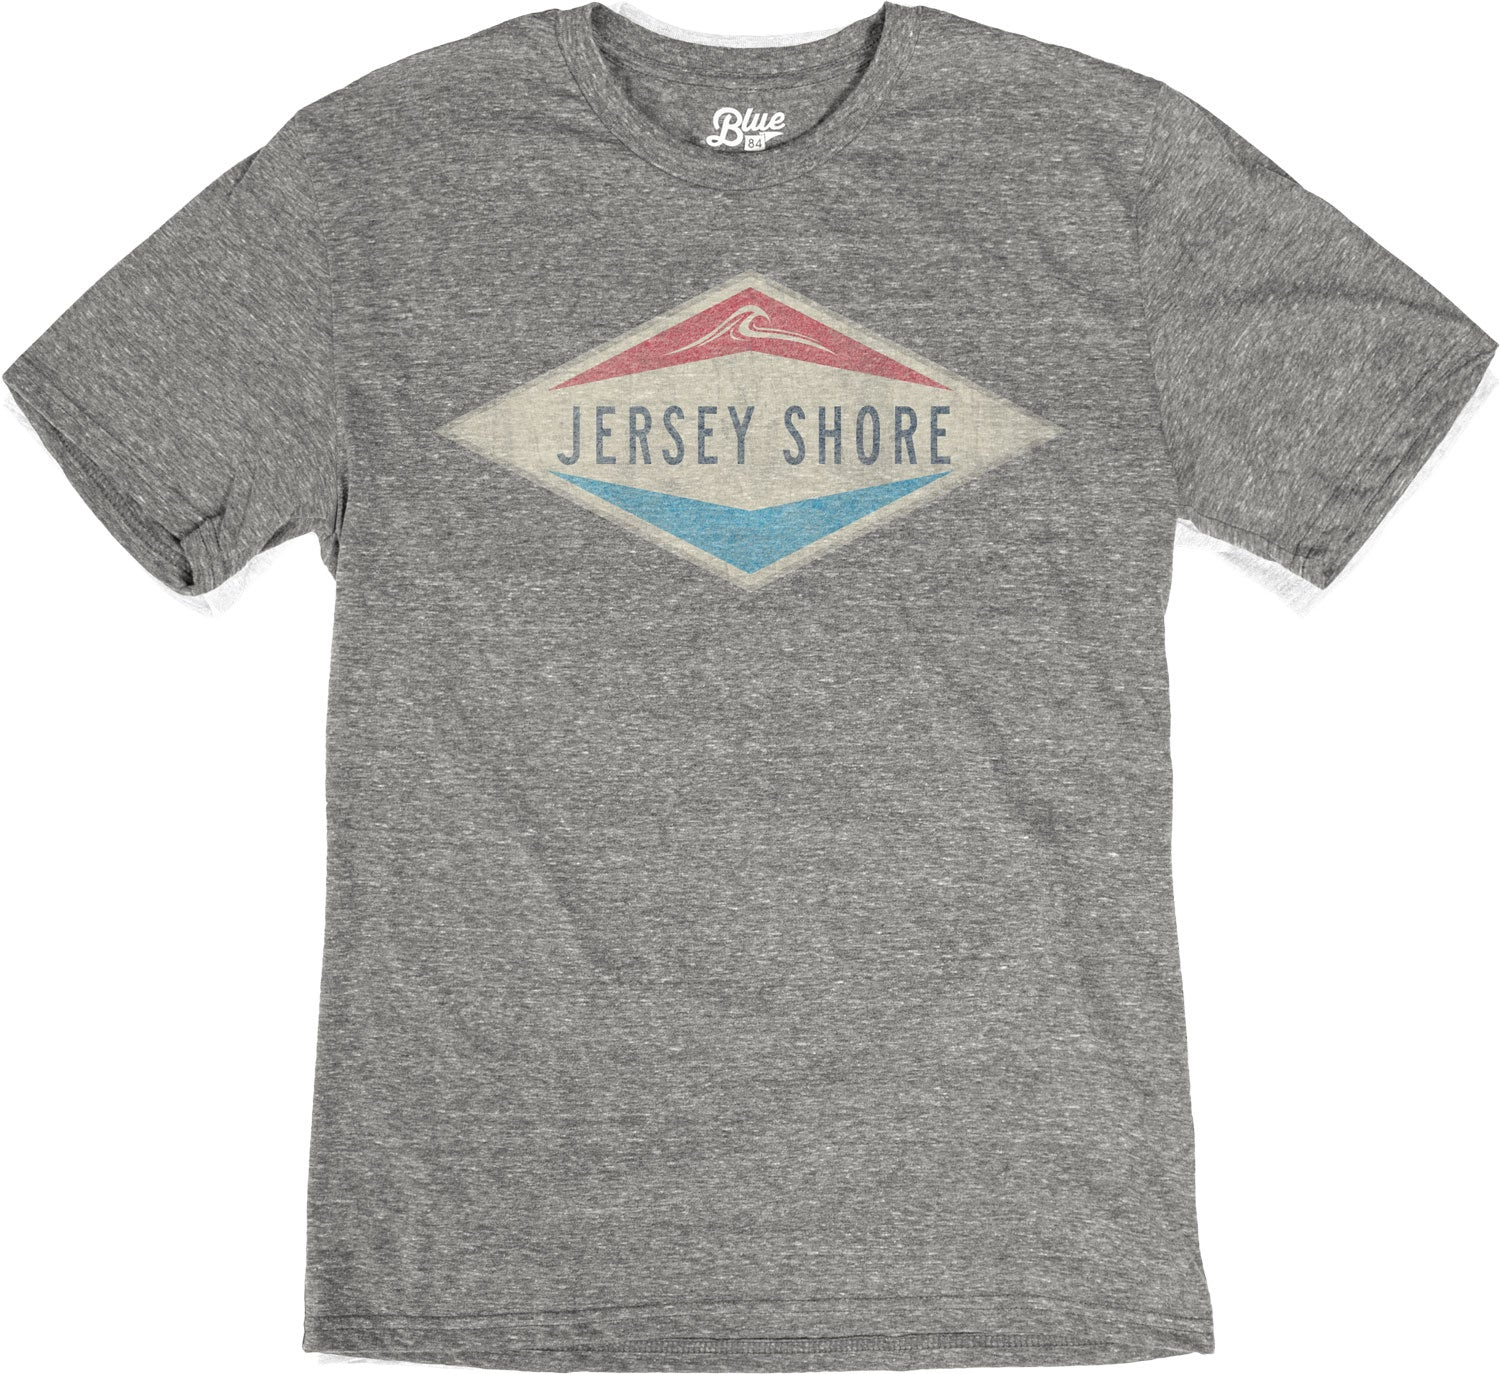 Jersey Shore oil burner wave kids tee (2 colors)